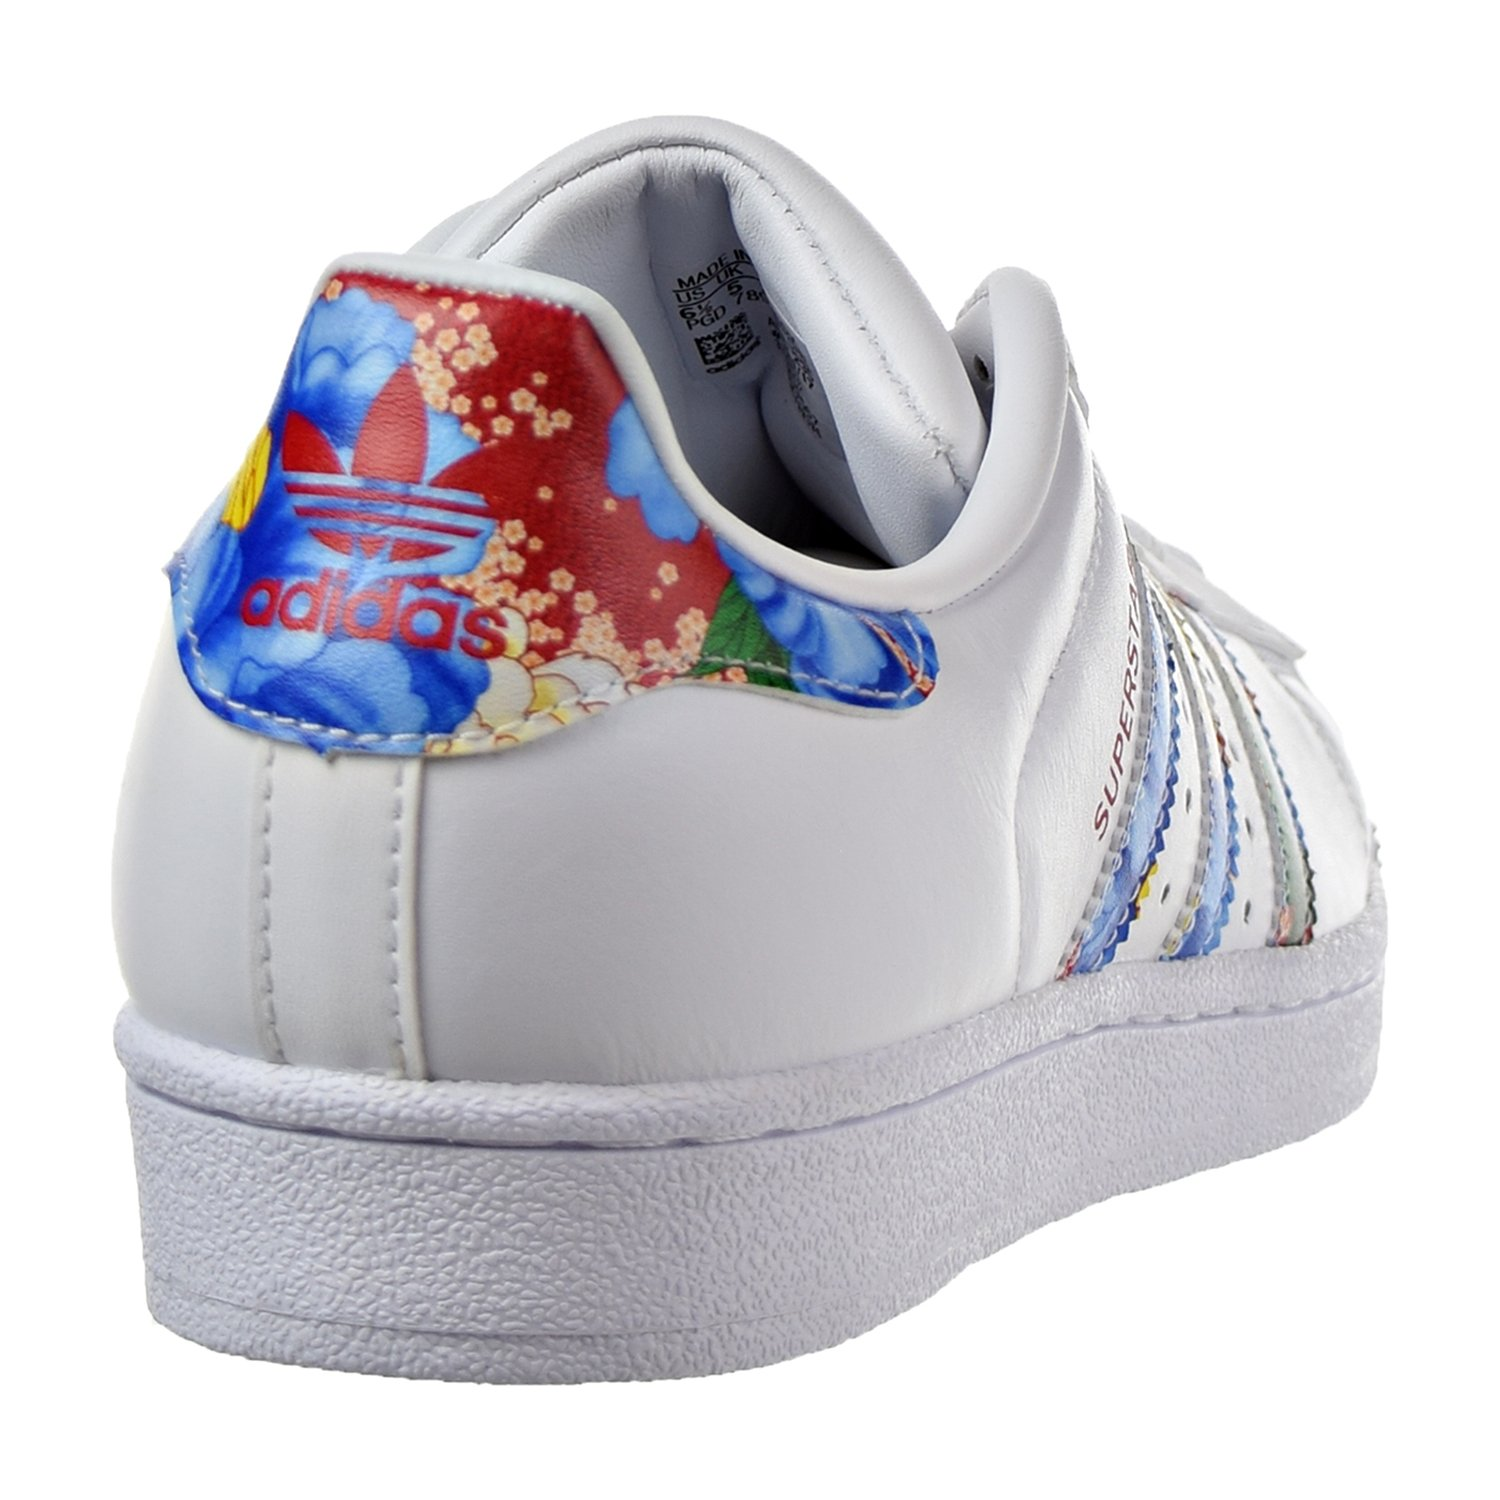 Superstar Adidas Chaussures Des Femmes Blanc / Rouge / Multicolore Bb0532 Dt72dO